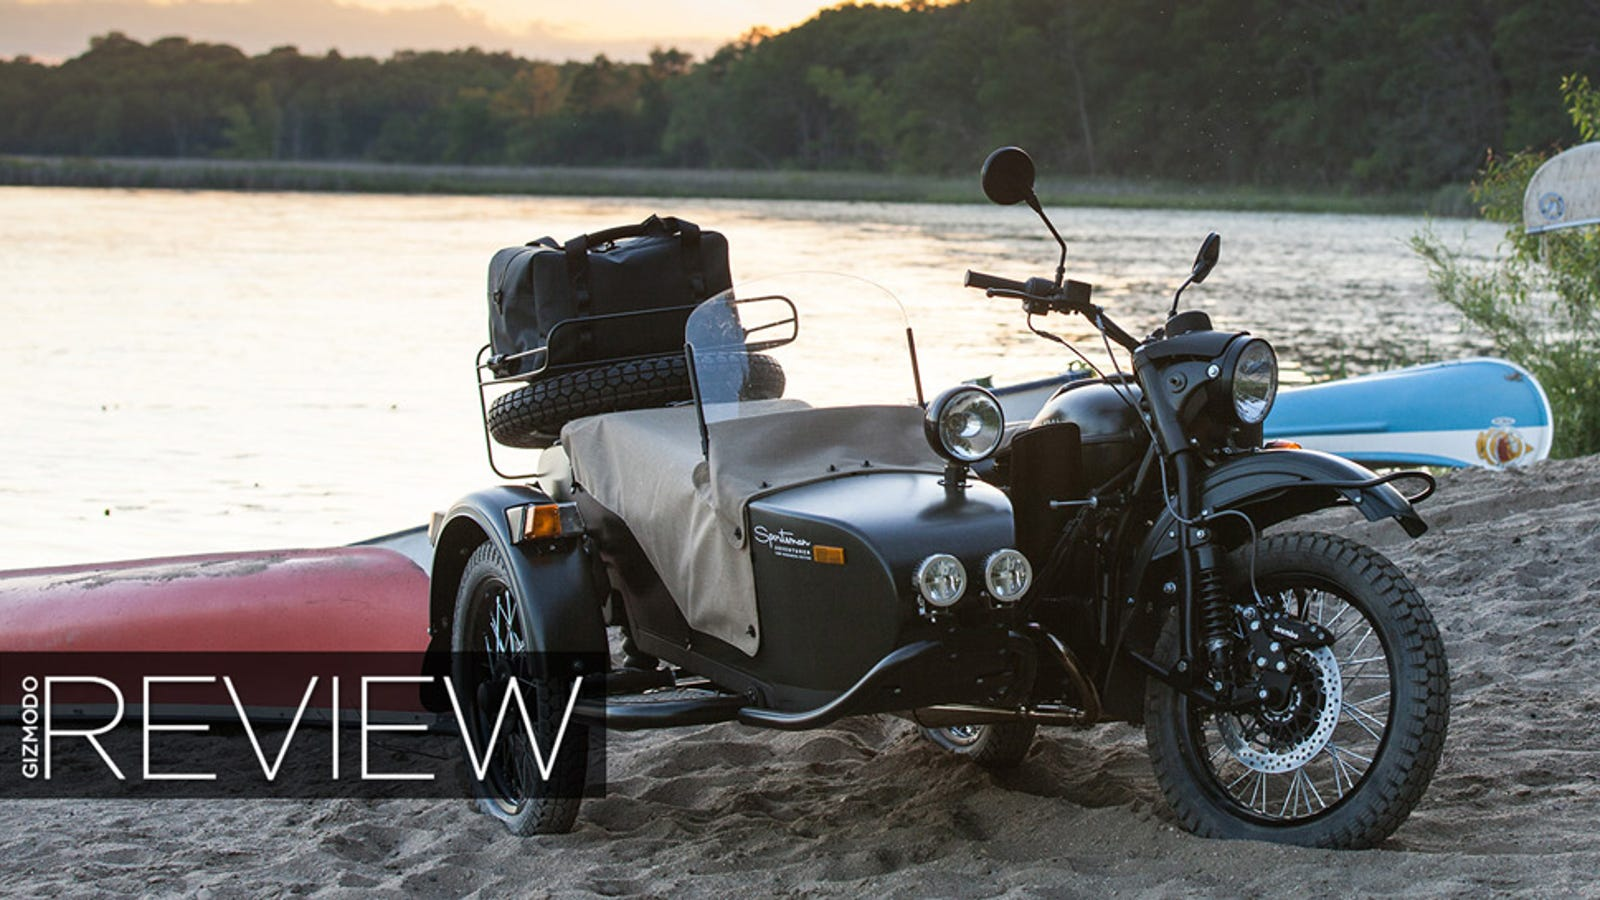 2015 Ural Sidecar Review Wwii Soviet Tech On And Off The Road Today Engine Diagram